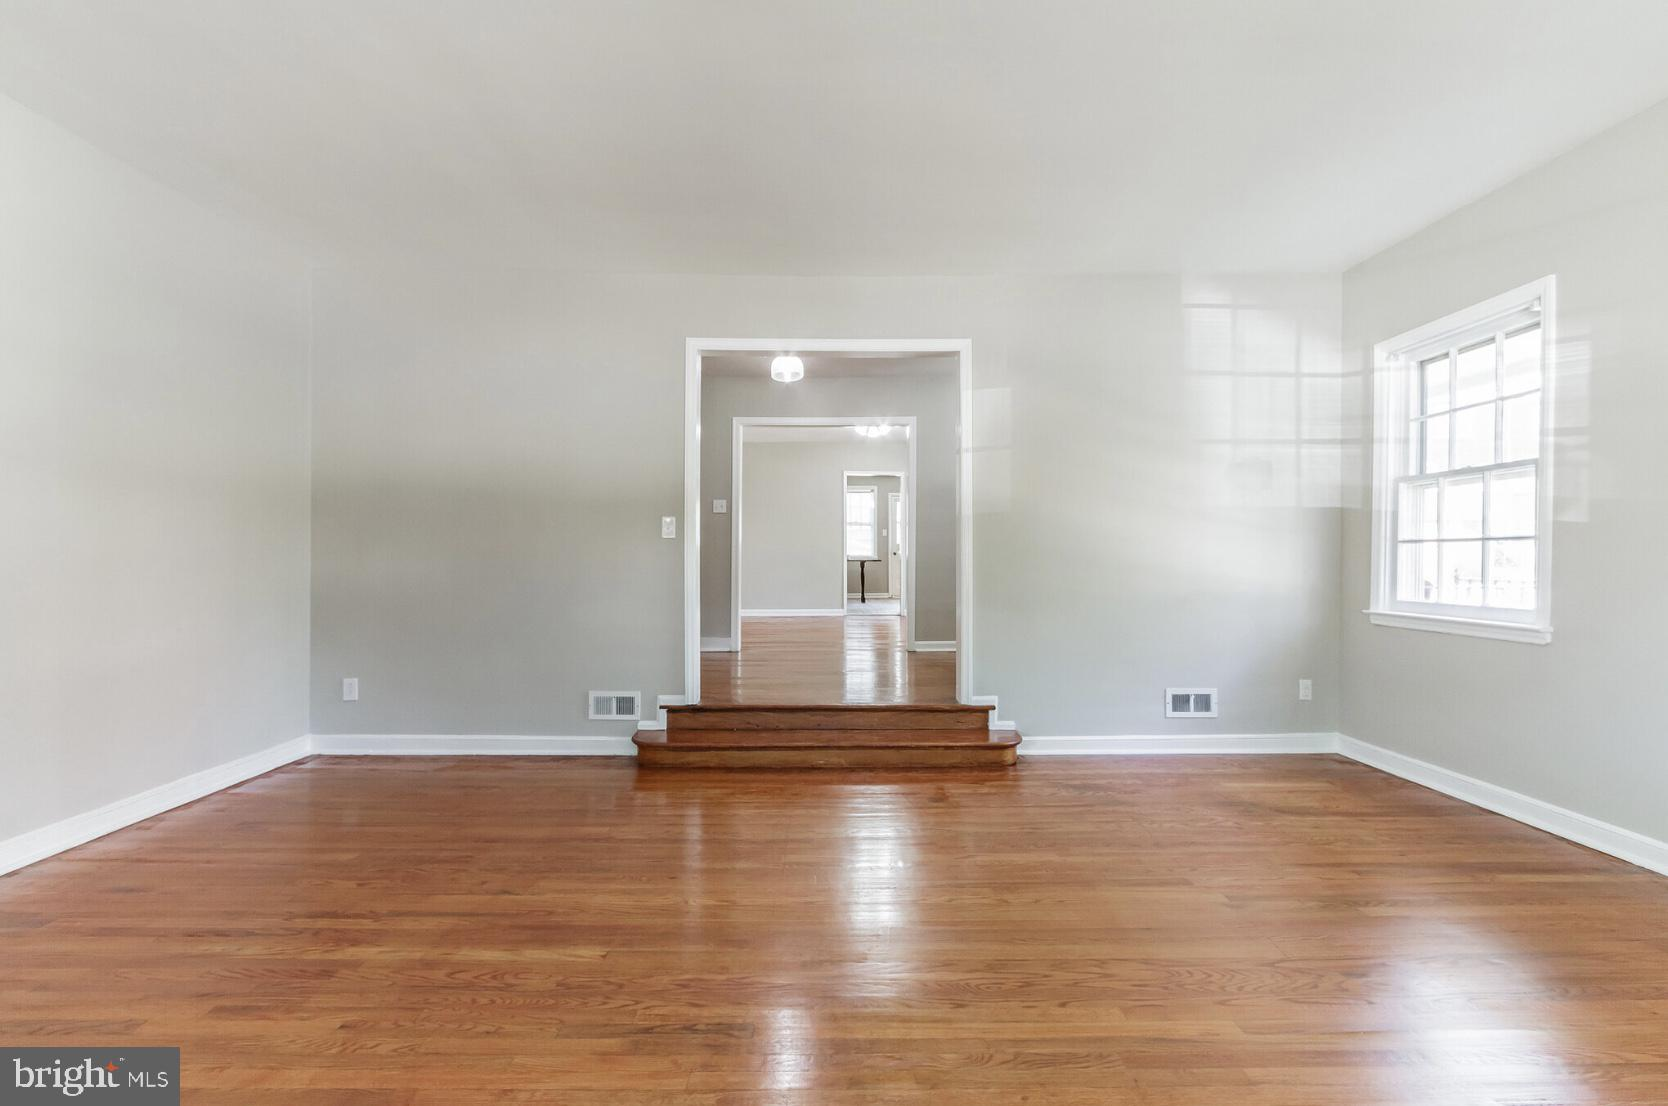 You do not  want to miss this North Wilmington beauty.  This home is an absolute GEM! The layout, size, and location of this home rarely becomes available.  The main level has an eat in kitchen,  that opens to a cozy family room.   From the foyer you can access the large dining room or step down into the beautiful and extremely spacious formal living room. These rooms  flow seamlessly and are great for family gatherings.   A half bath off the foyer completes the main level.  As you make your way to the upper level you will  immediately take notice of the wide stairs and high ceiling  in the stairwell.  The upper level  host 3 bedrooms and 2 full baths; and the bedroom  sizes will not disappoint!!   This entire home has been freshly painted, and has the original beautiful hardwood flooring  throughout the entire home, (except baths, kitchen, and family room).  Put this one on your list!